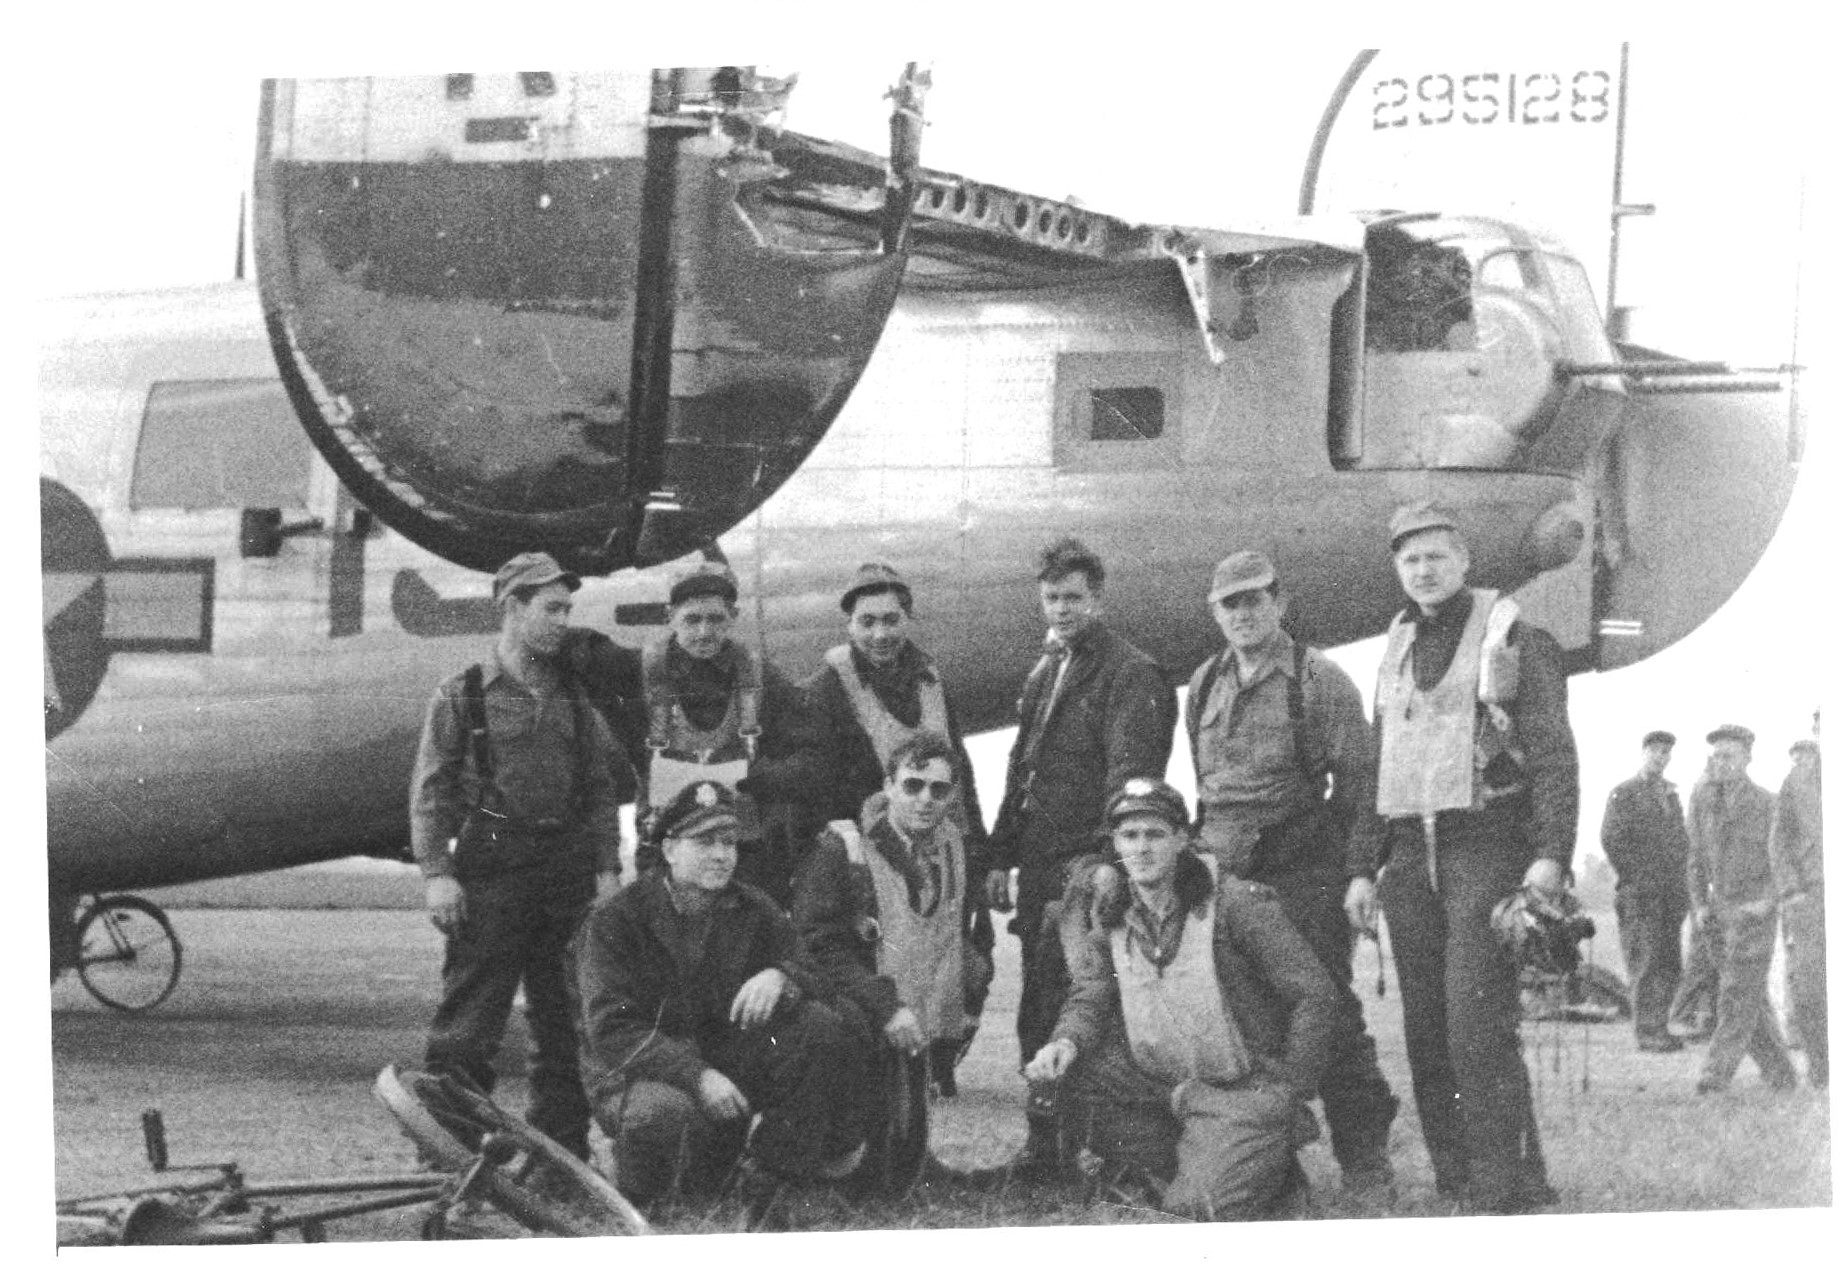 14 September 1944 - The Bruce Crew poses in front of a wrecked Bonnie Vee after bringing her back from a mission to Fismes, France. They had left the U.S. aboard the Bonnie Vee, named for Bruce's wife, but had her taken from them upon arrival in England. Reunited, but not for long, their copilot, John Willett,was badly hit yet heroically fulfilled his duties on this mission. The crew would reunite one more time with Bonnie Vee on a fatal mission nearly two weeks later when seven of them would fall to their deaths, including their new copilot. Stories below.